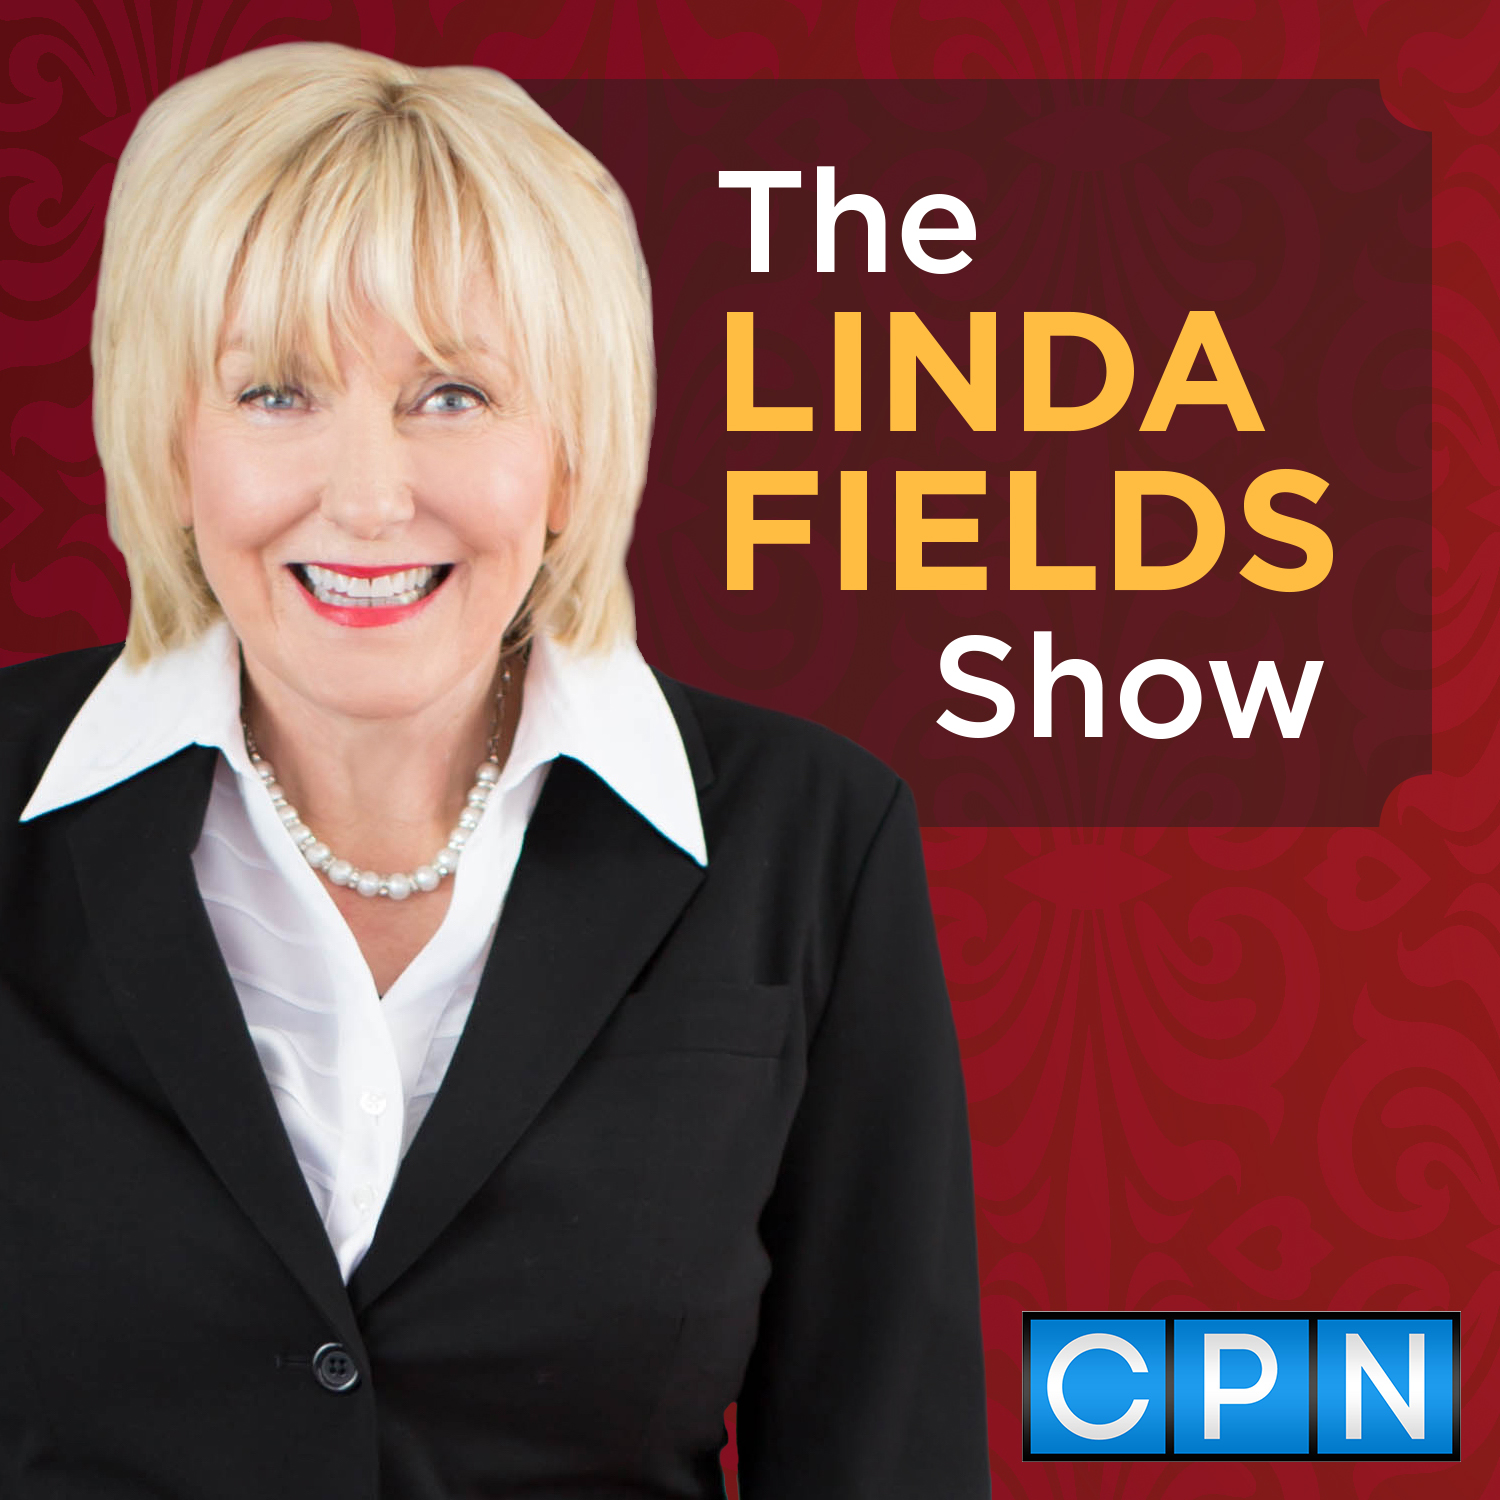 Linda Fields Show